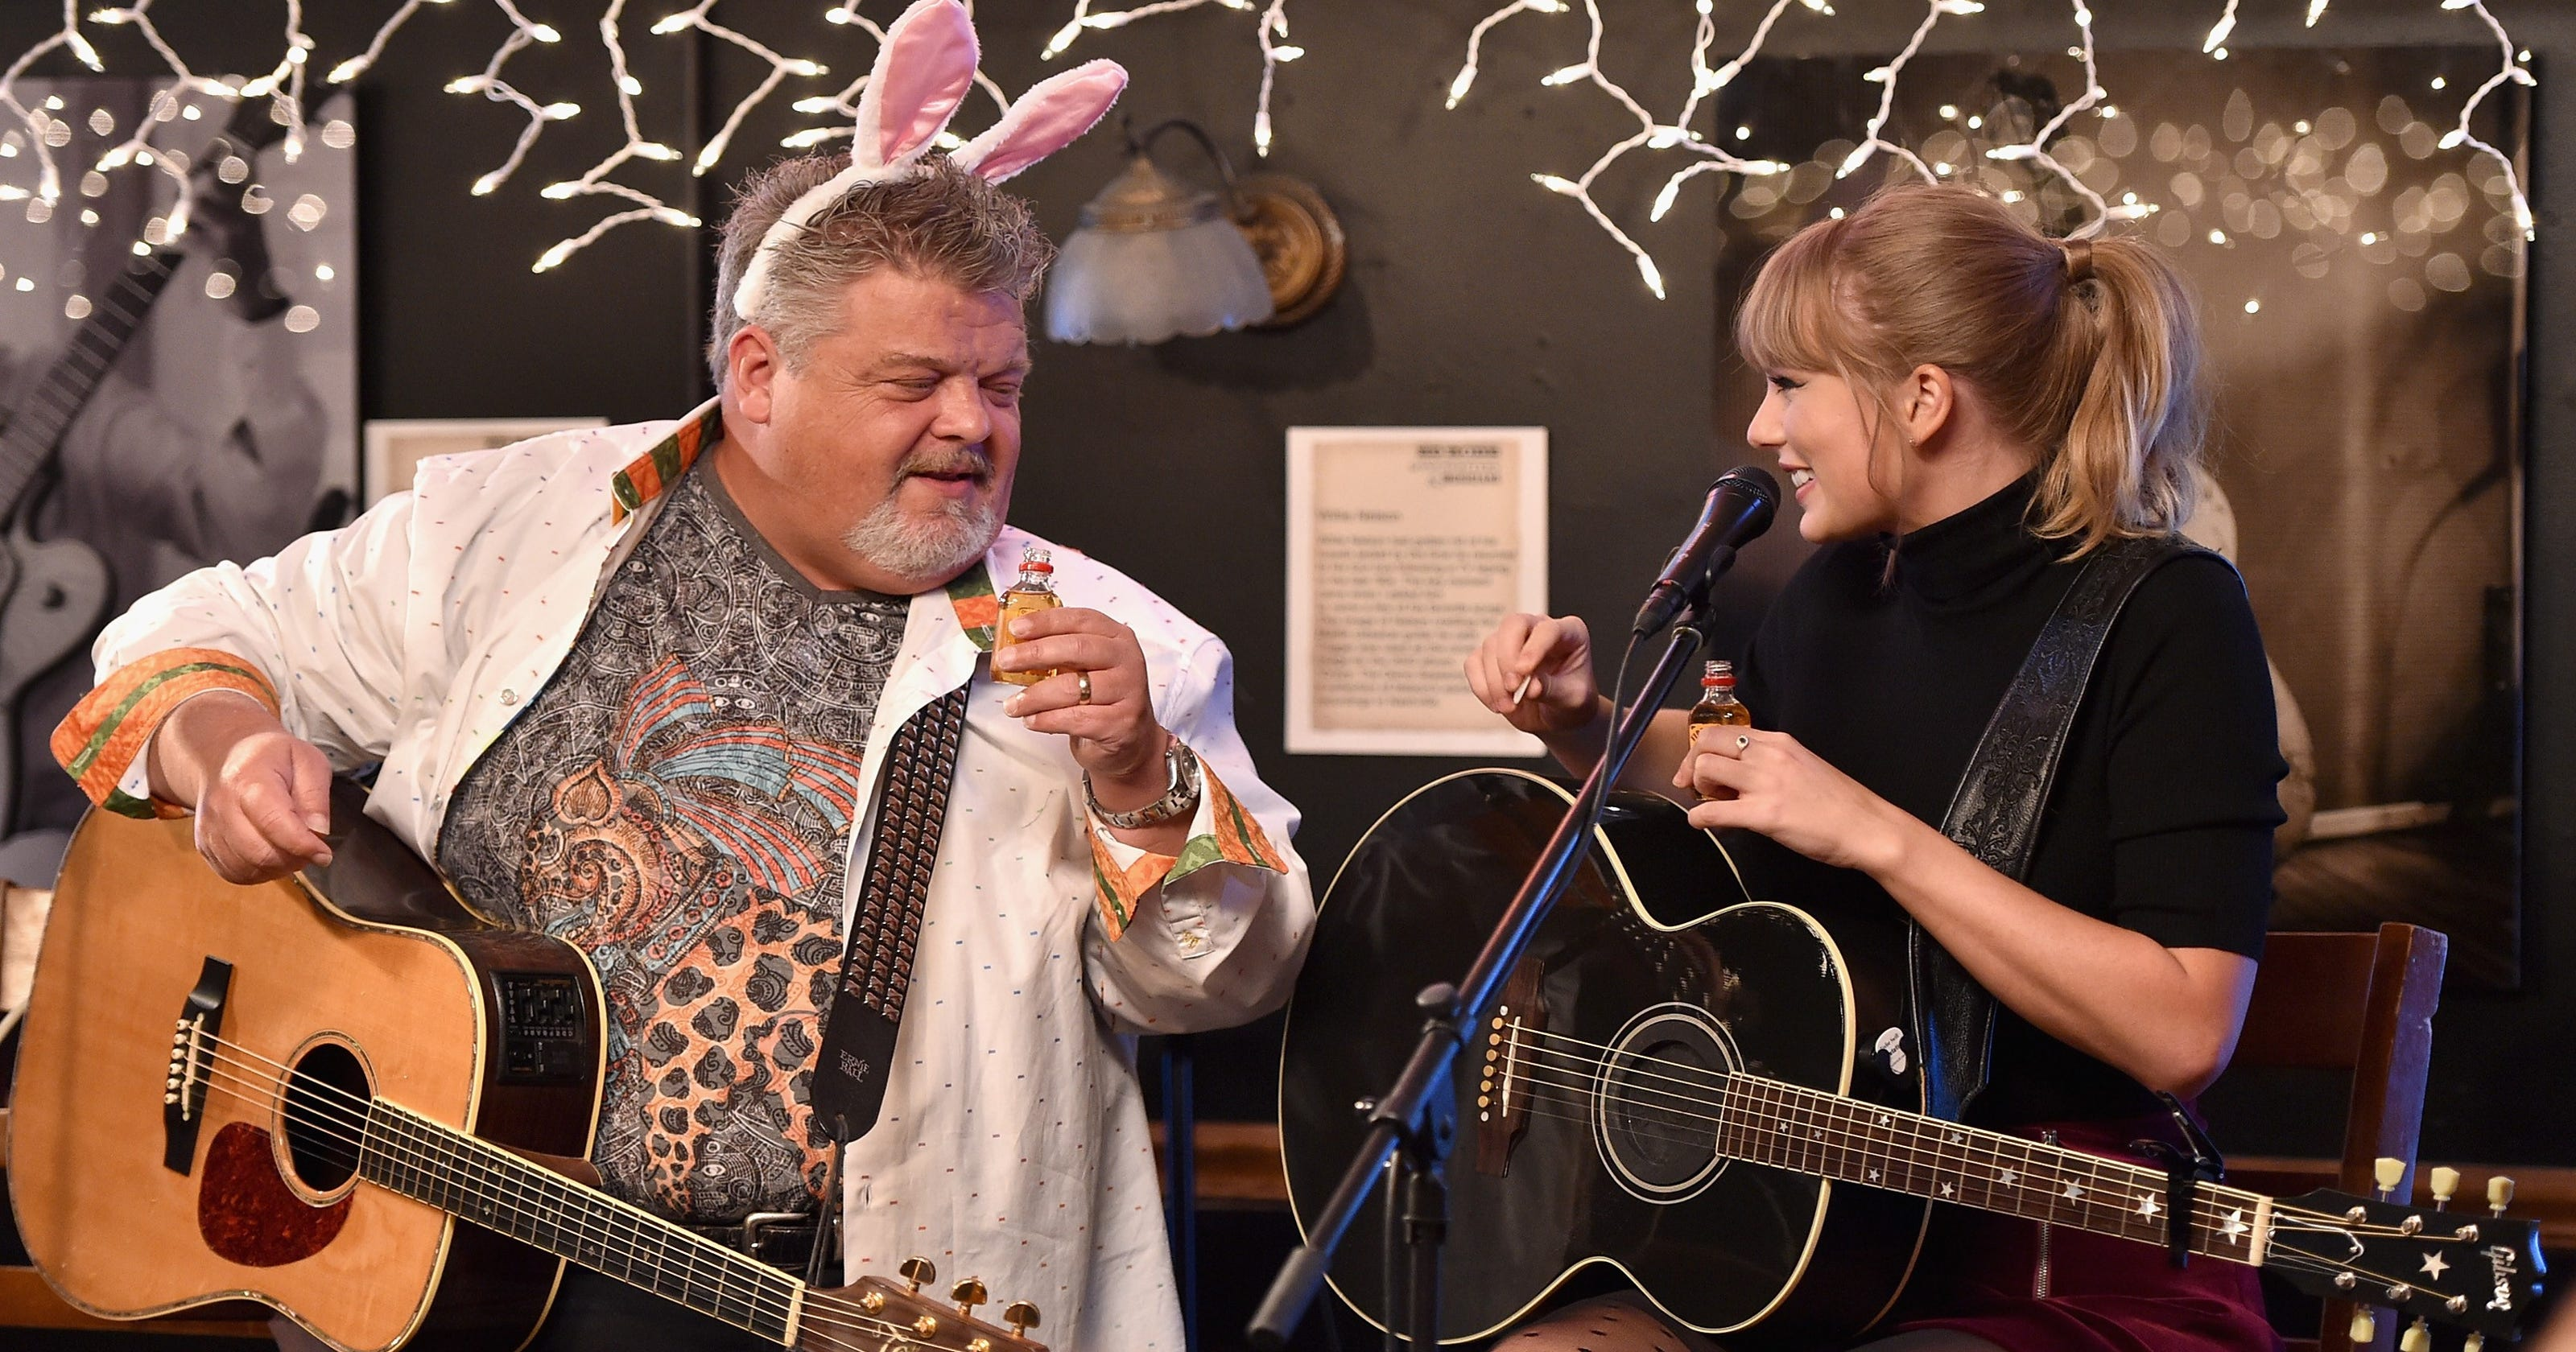 Taylor Swift Goes Country Shocks Fans At Bluebird Cafe